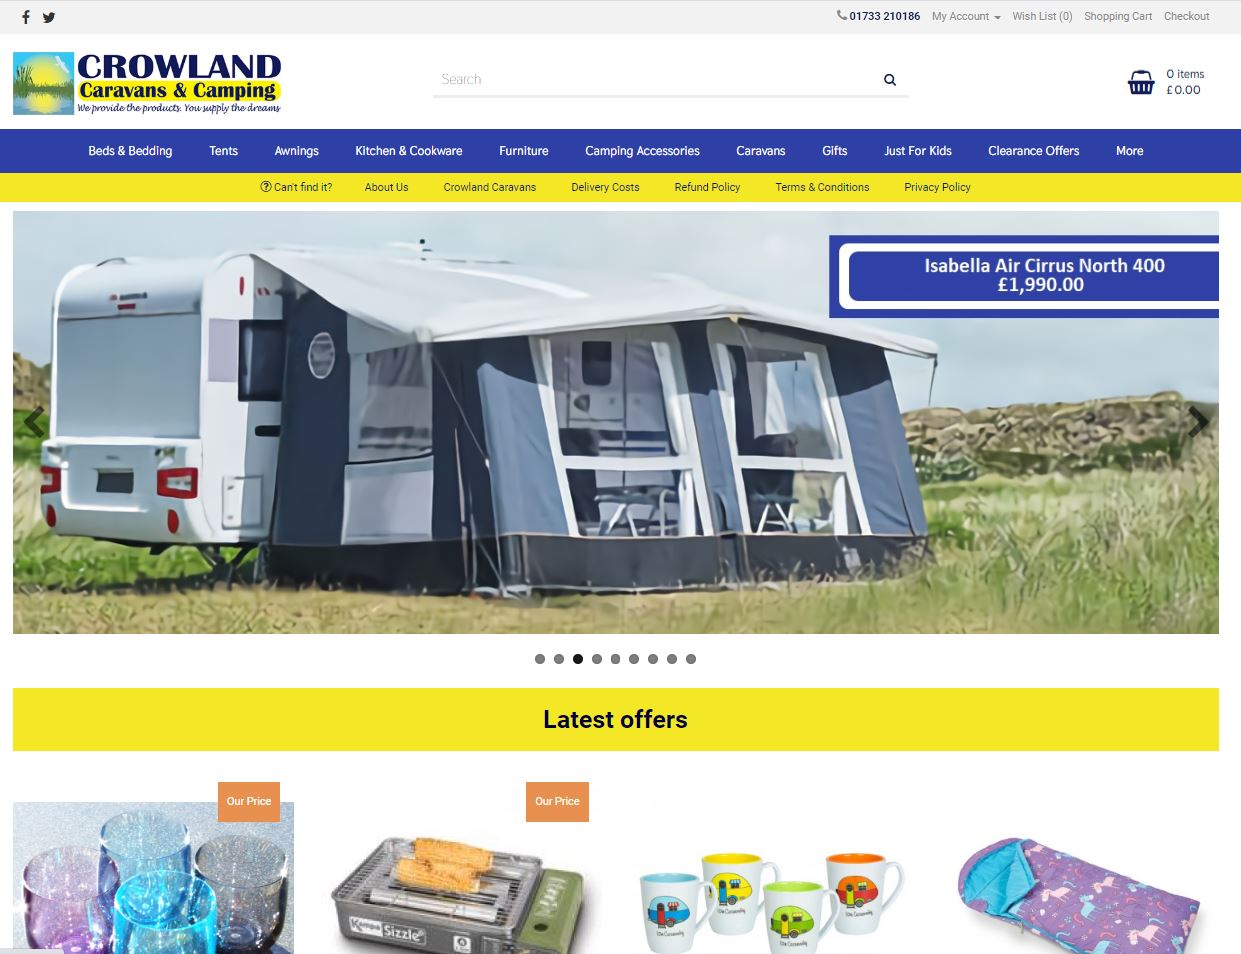 Crowland Camping for shopping online